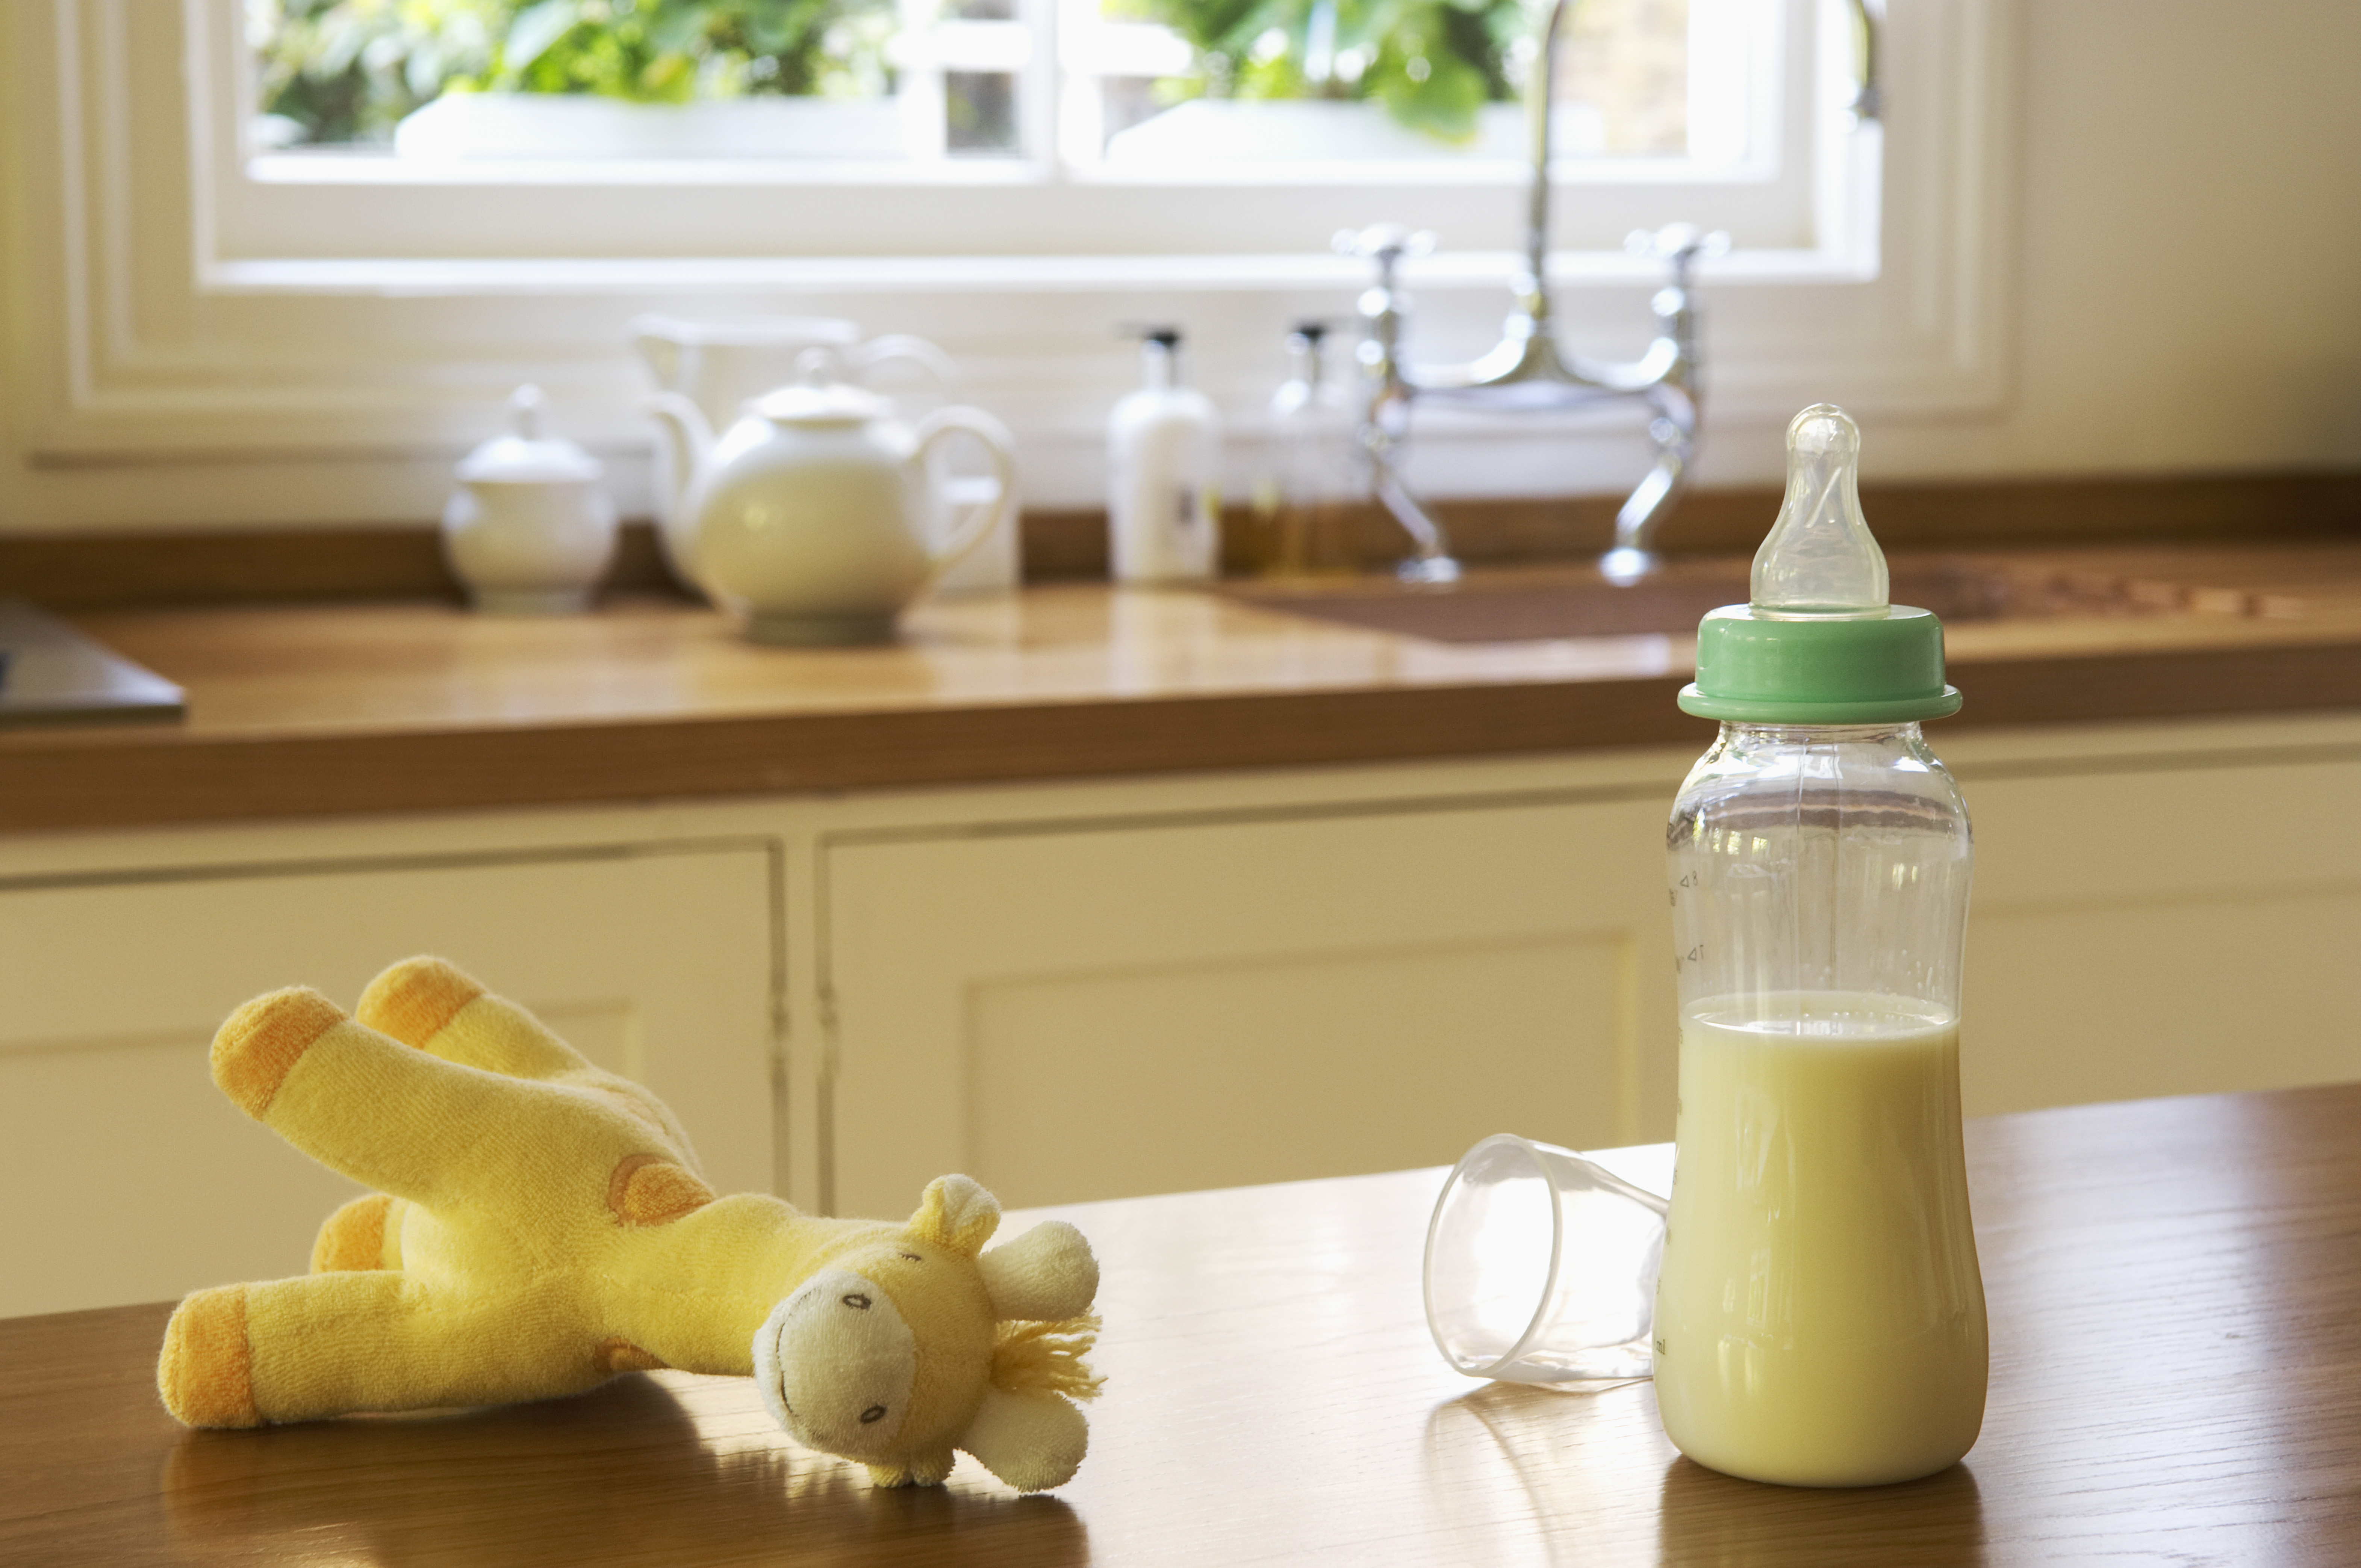 Baby Items on Kitchen Counter